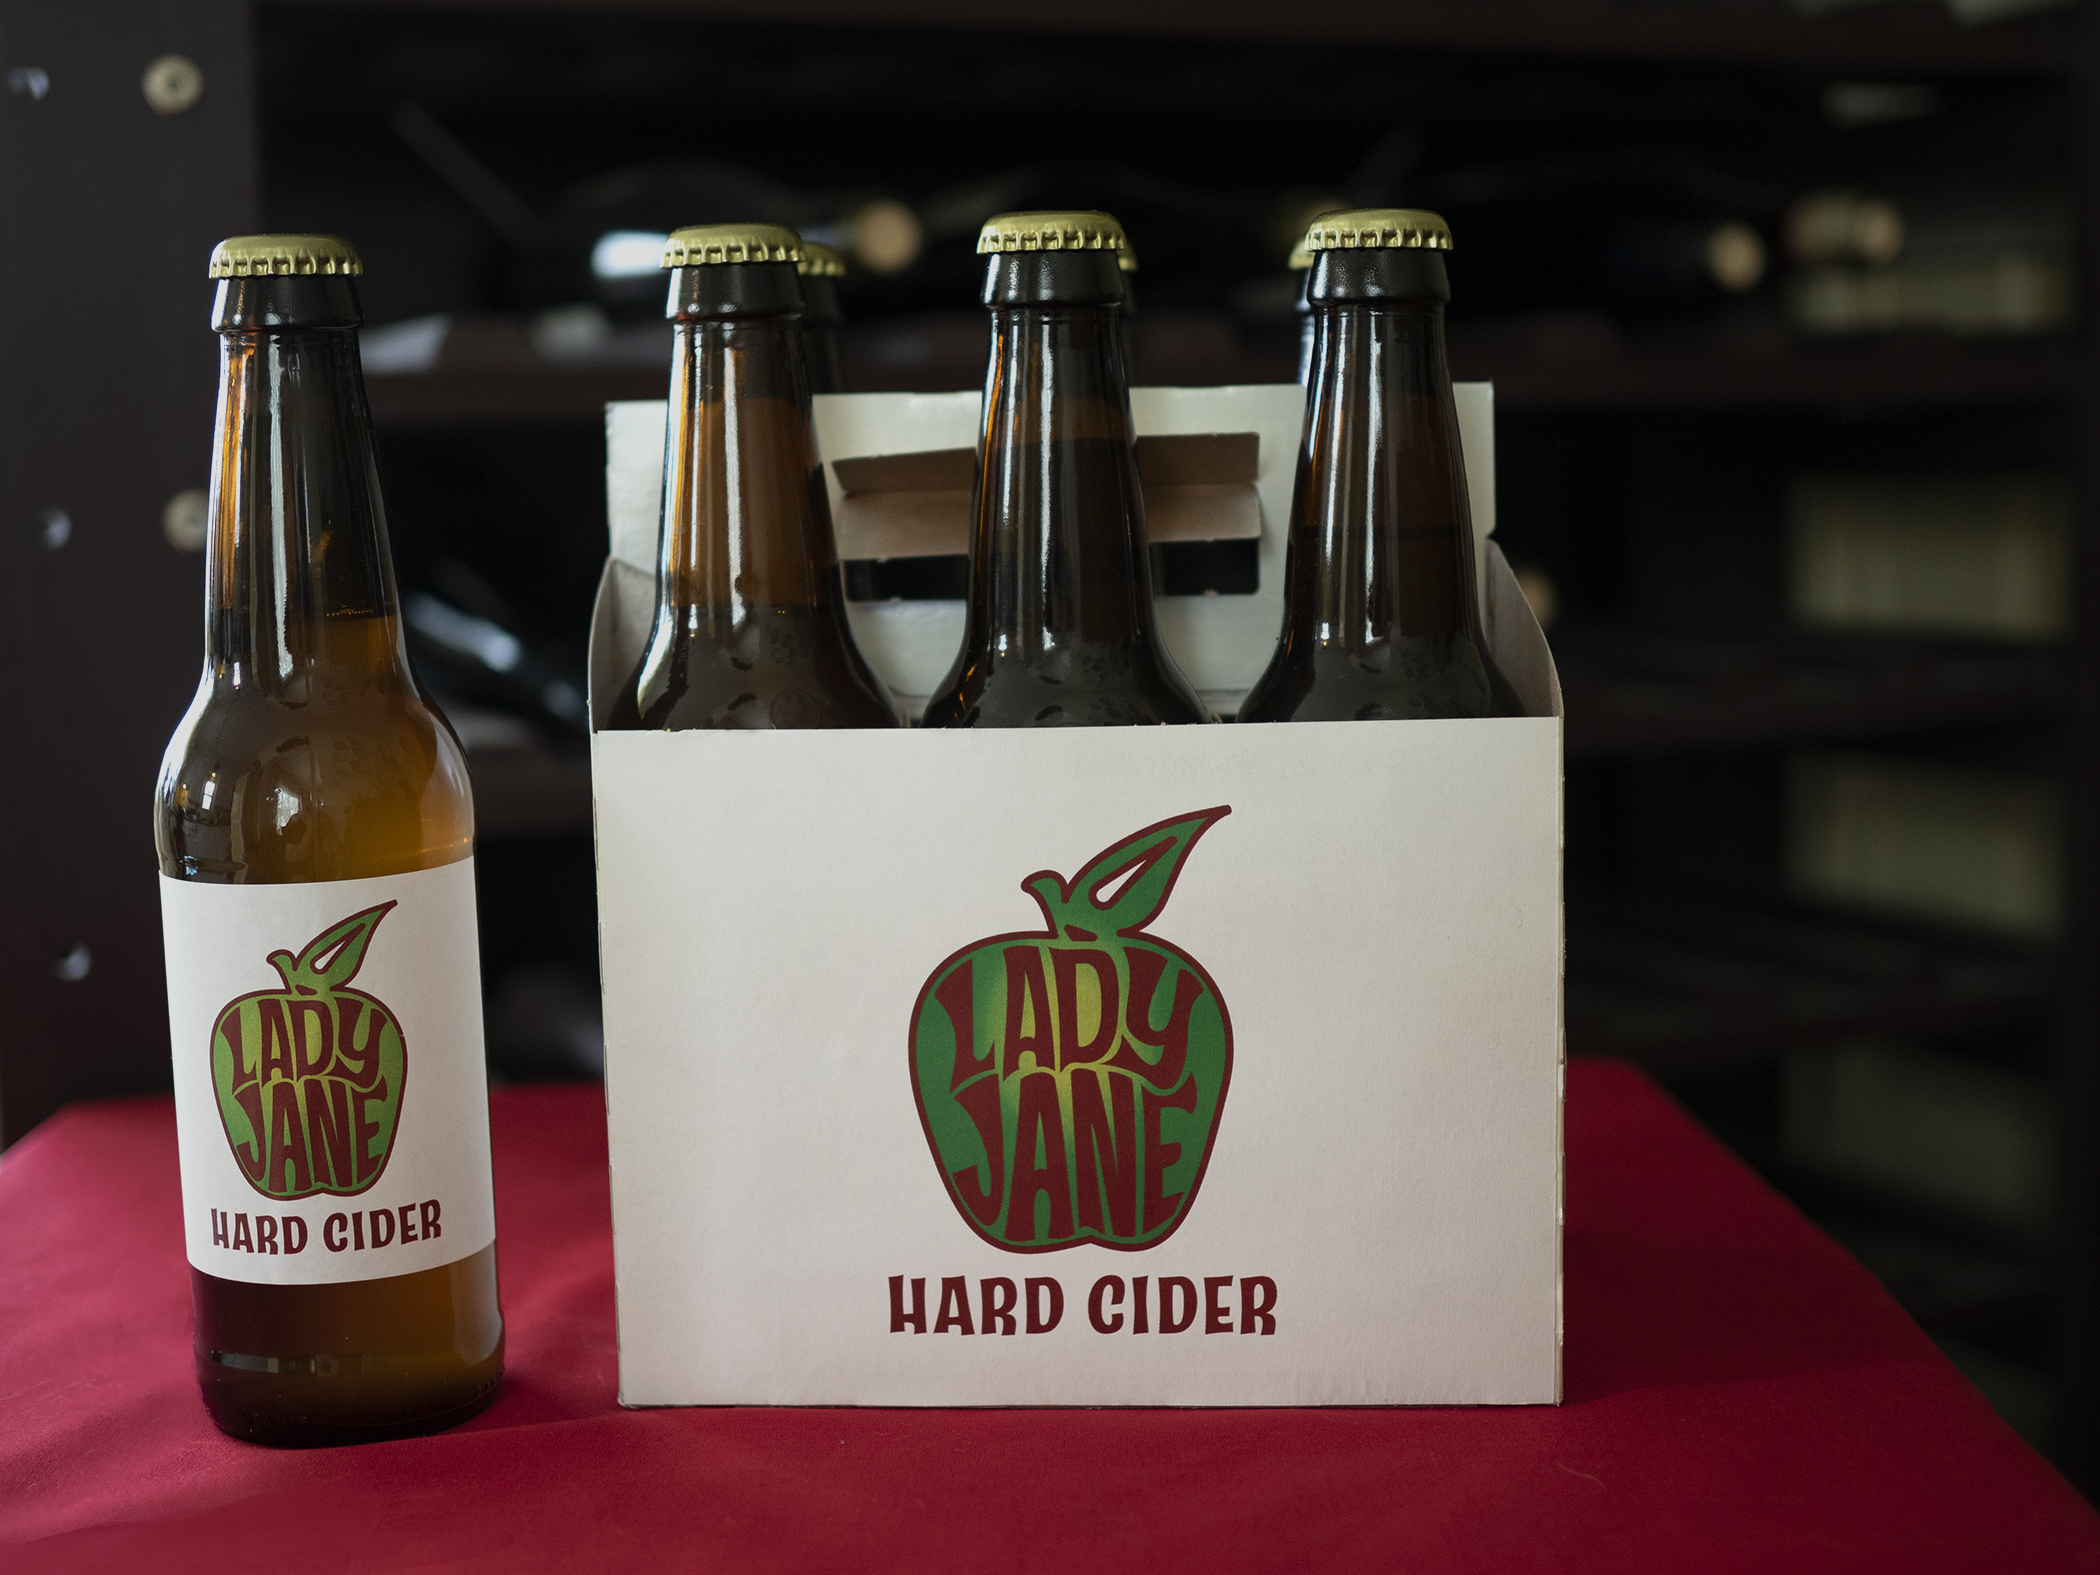 Lady Jane Hard Cider